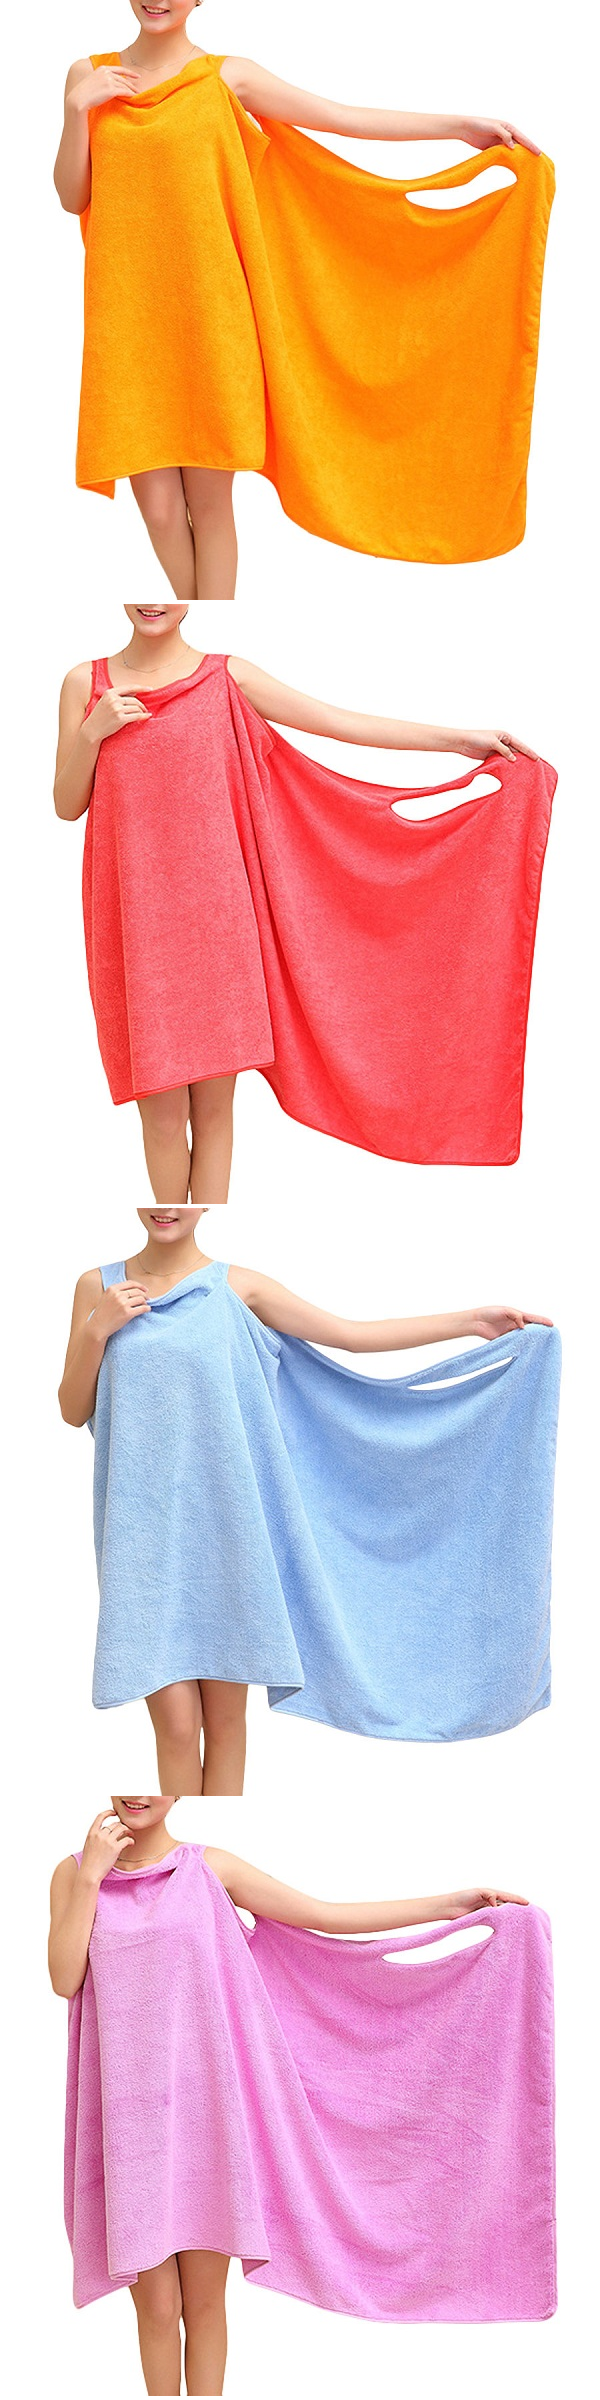 Women Summer Microfiber Soft Bath Towel Beach Able Wear Spa Bath Robe Plush Highly Absorbent